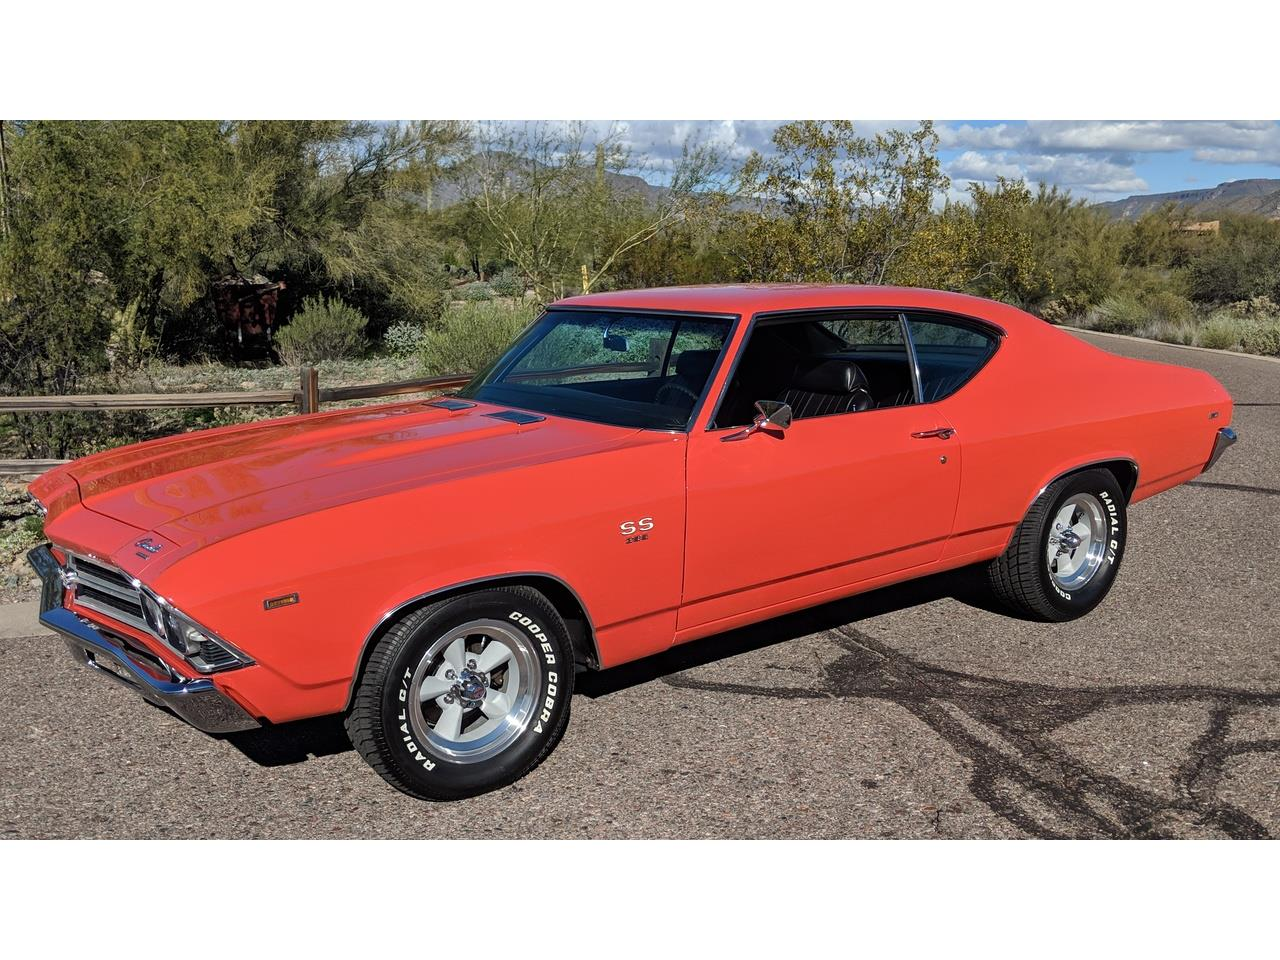 Large Picture of '69 Chevrolet Chevelle SS located in CAVE CREEK Arizona - PEBN